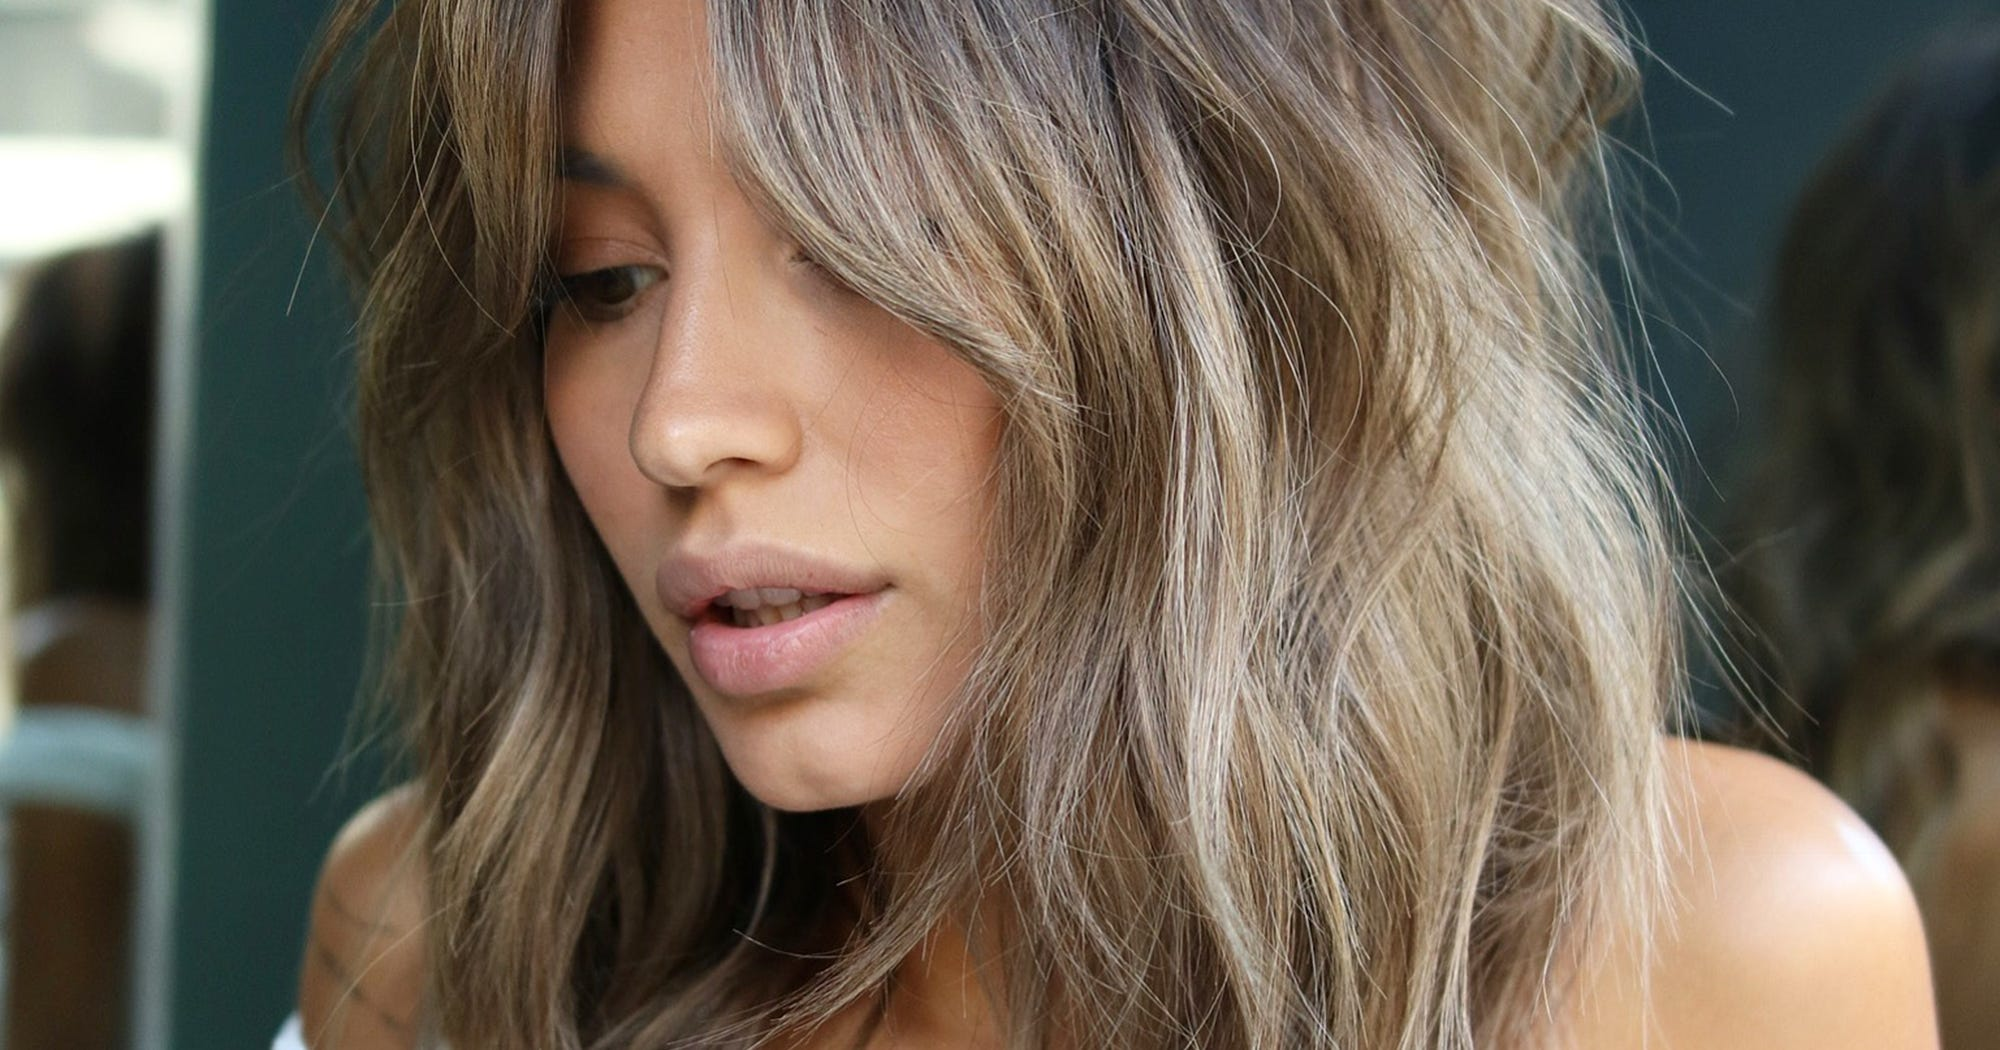 New Hair Dye Styles: Fall Hair Color Trends & Ideas For A New Look In 2018